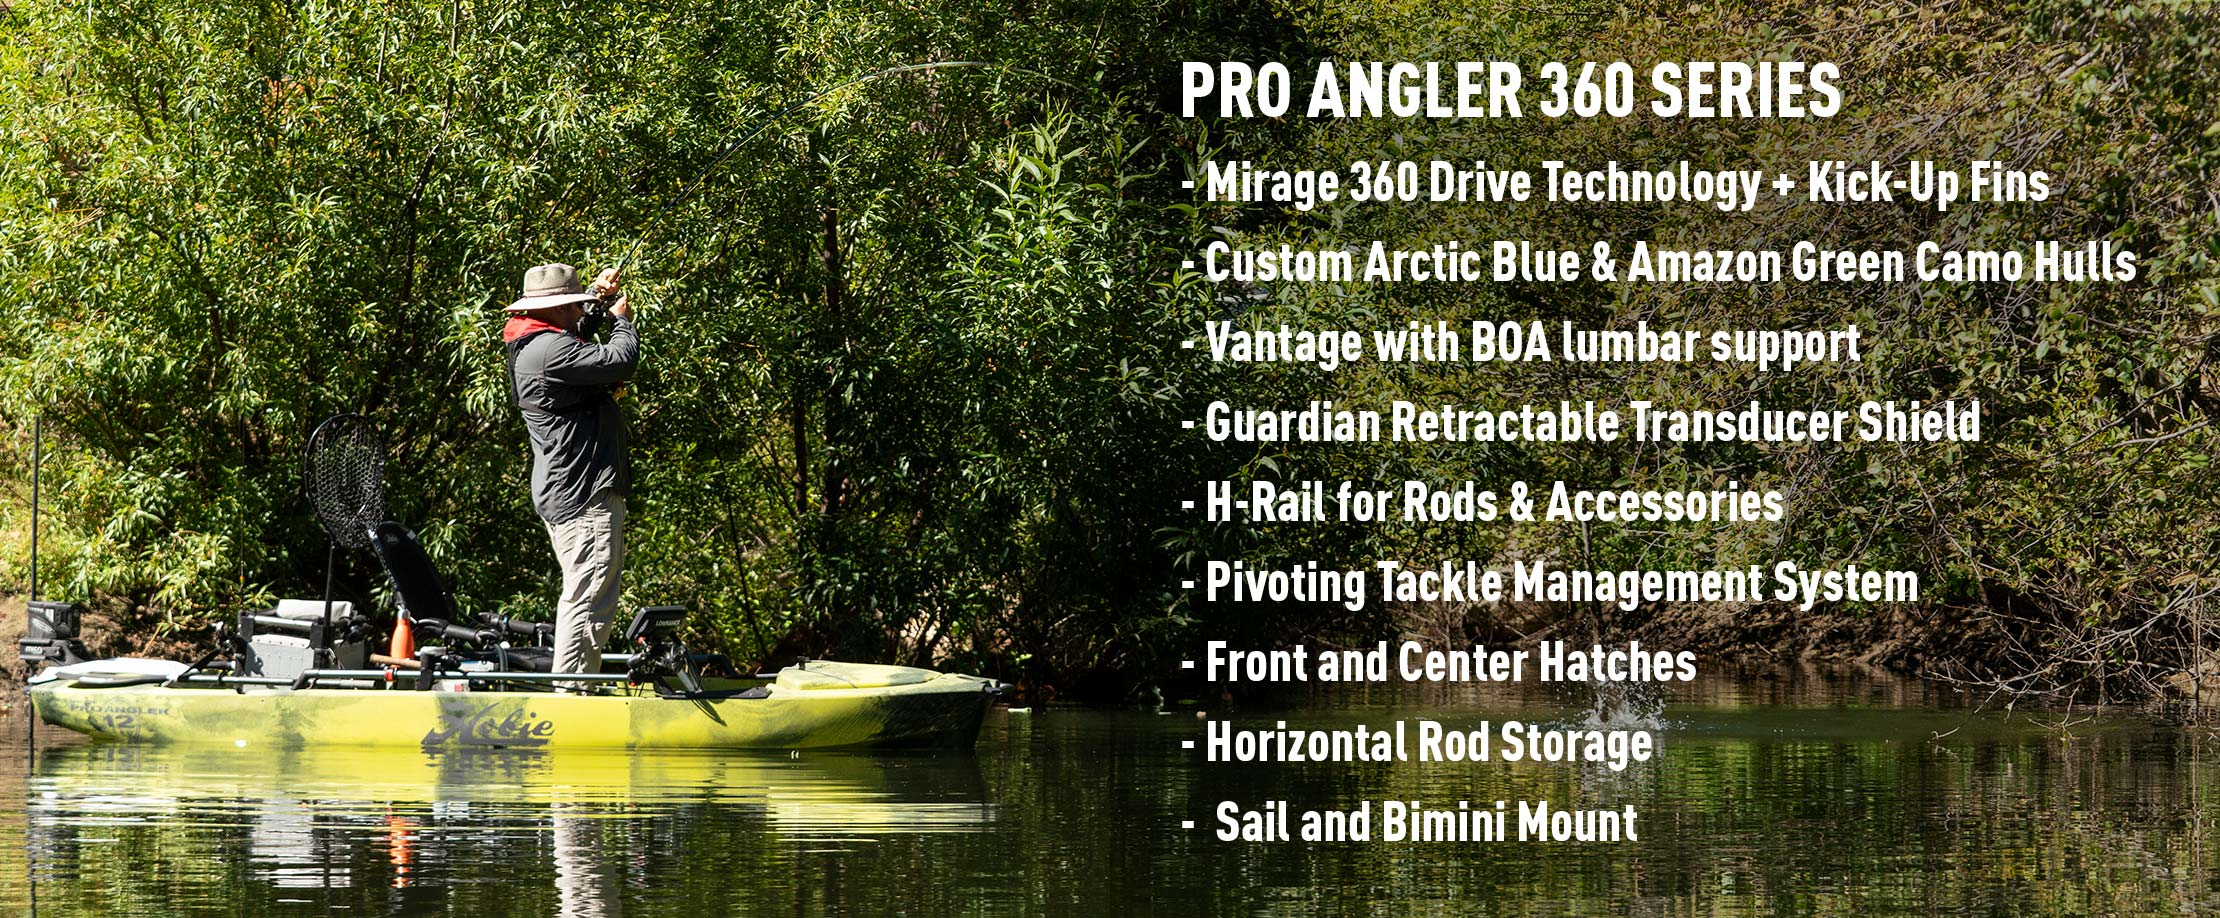 Mirage Pro Angler 14 with 360 Drive Technology Features